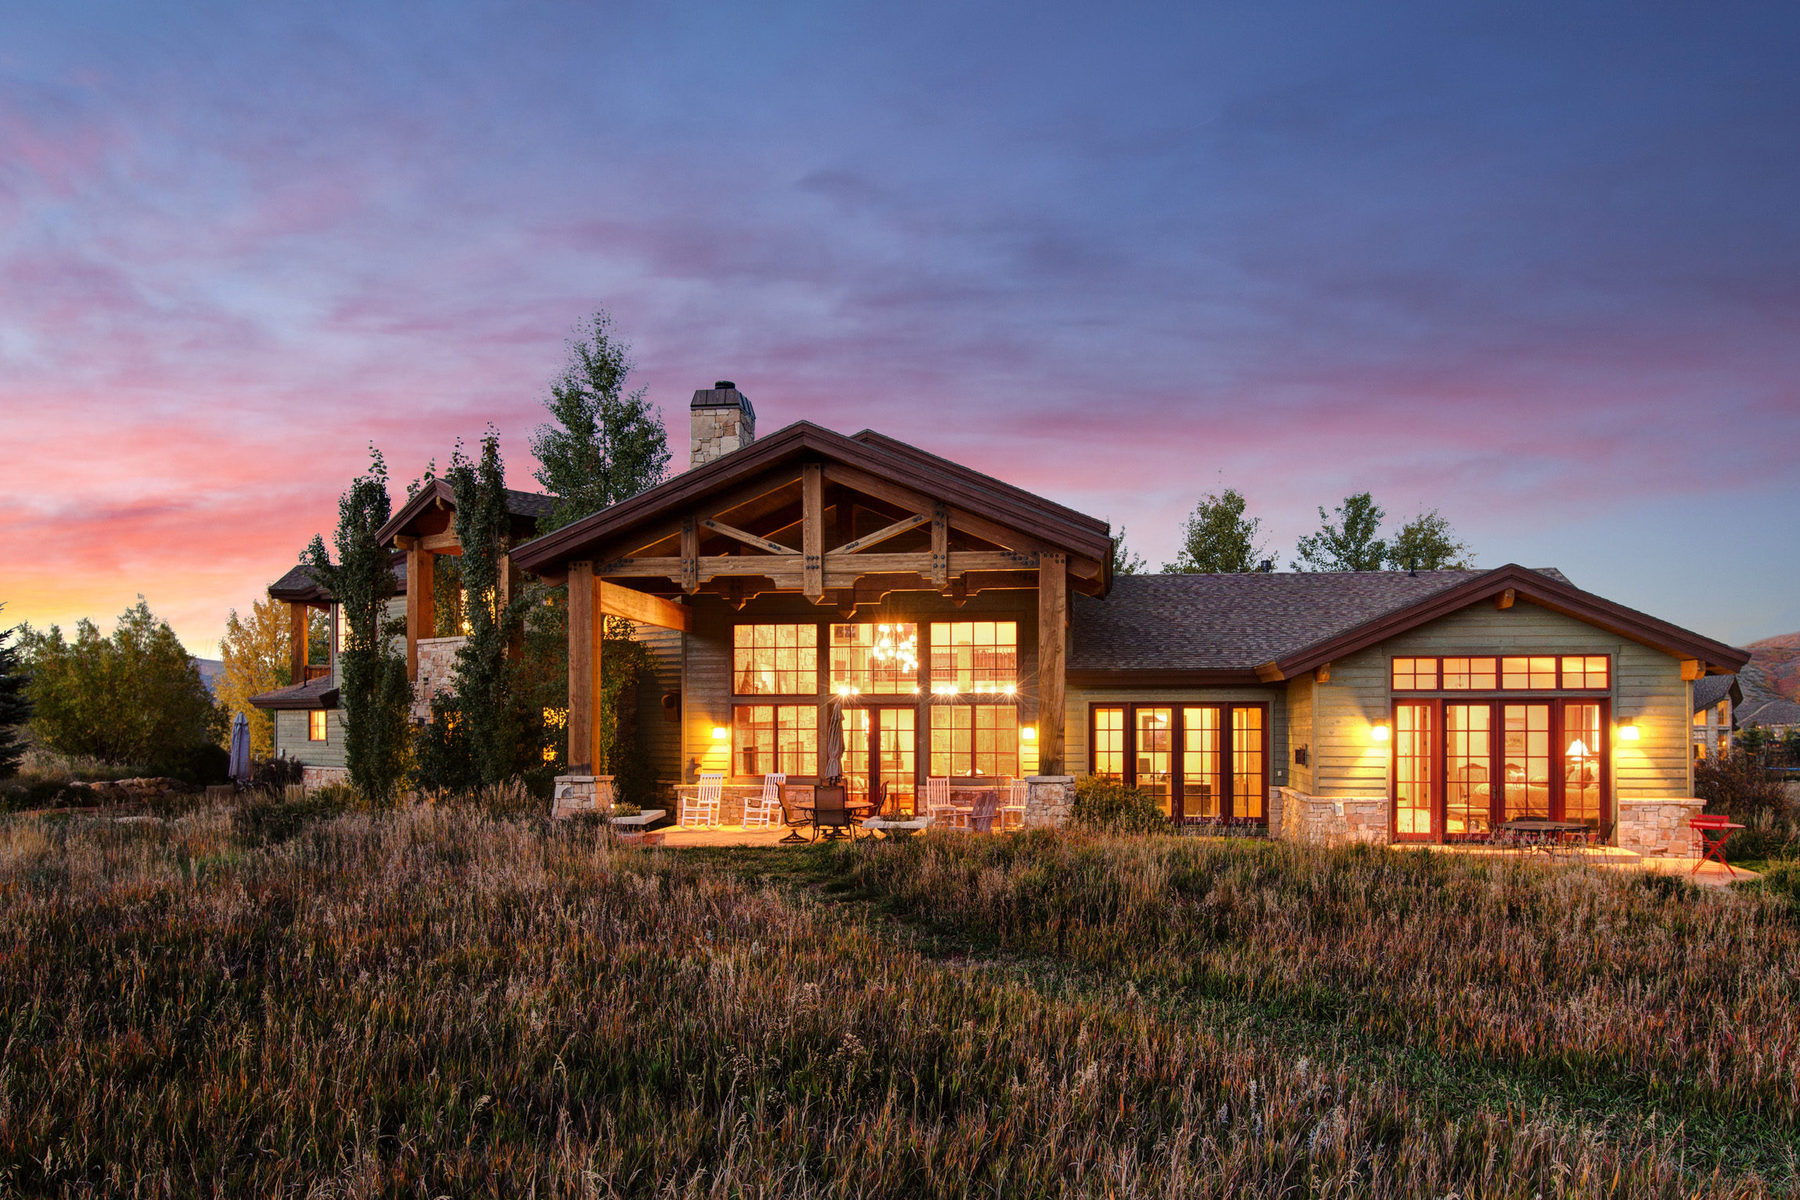 一戸建て のために 売買 アット Stunning Equestrian Property in Gated Community 2934 Quarry Mountain Rd Park City, ユタ, 84098 アメリカ合衆国